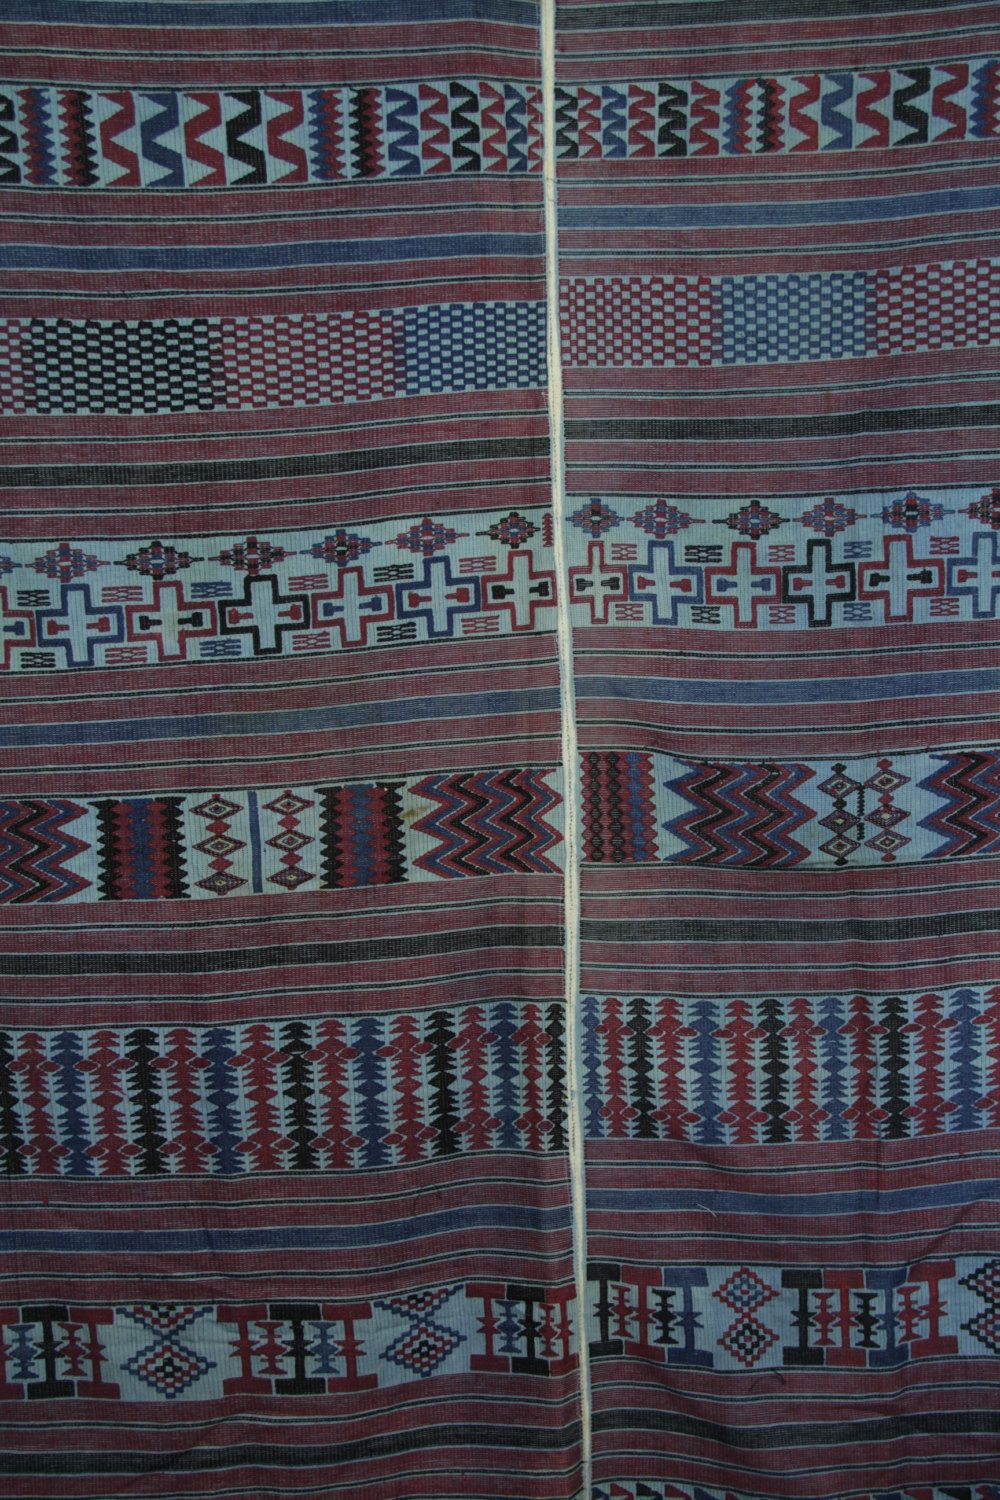 Vintage Rare Nupe Hand Woven Wrapper Cloth /Wall Hanging/ Nupe Hand Loomed Cotton by Grainsofafrica on Etsy